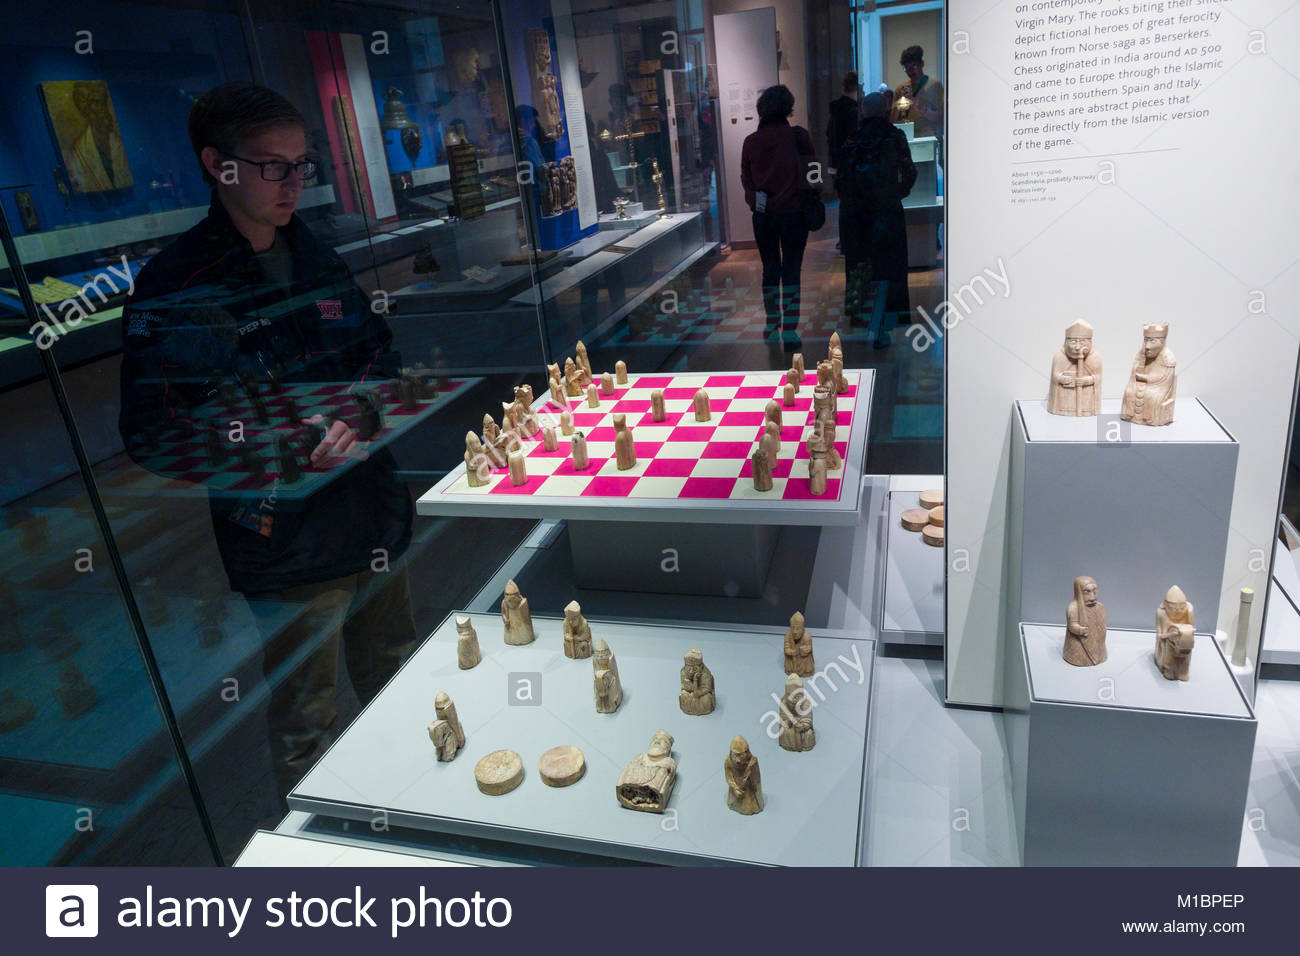 The Lewis Chessman in the Medieval Europe, Room 40, British Museum, Camden, London, England, United Kingdom - Stock Image